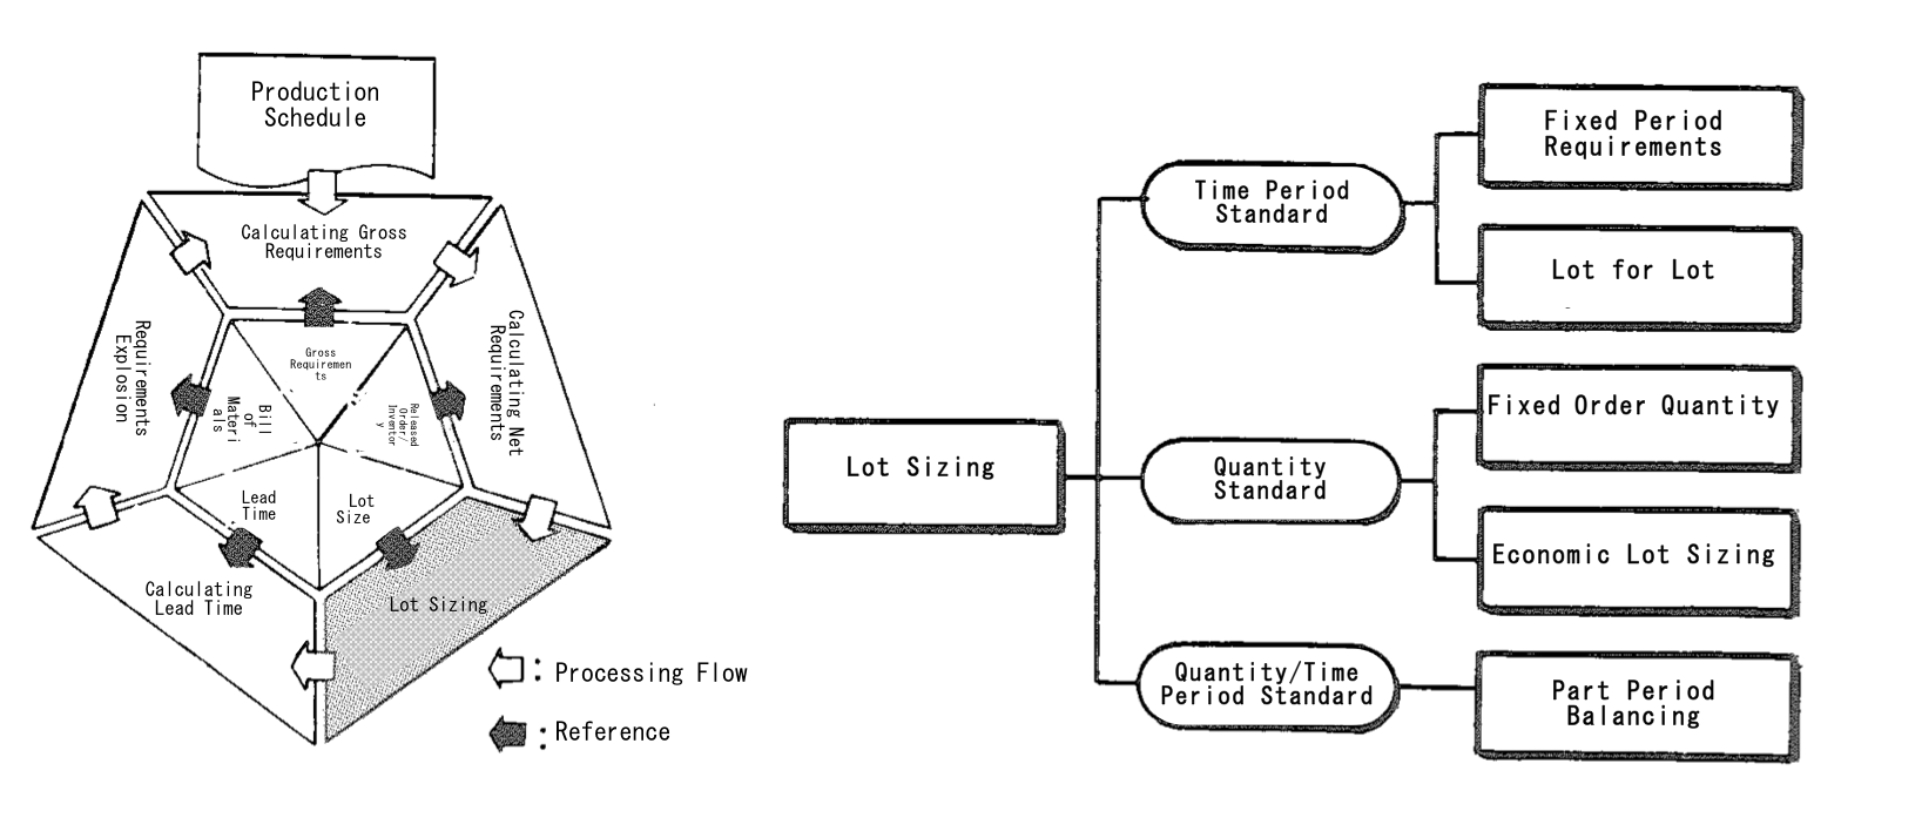 Lot Sizing - Material Planning - MRP glossary of Production